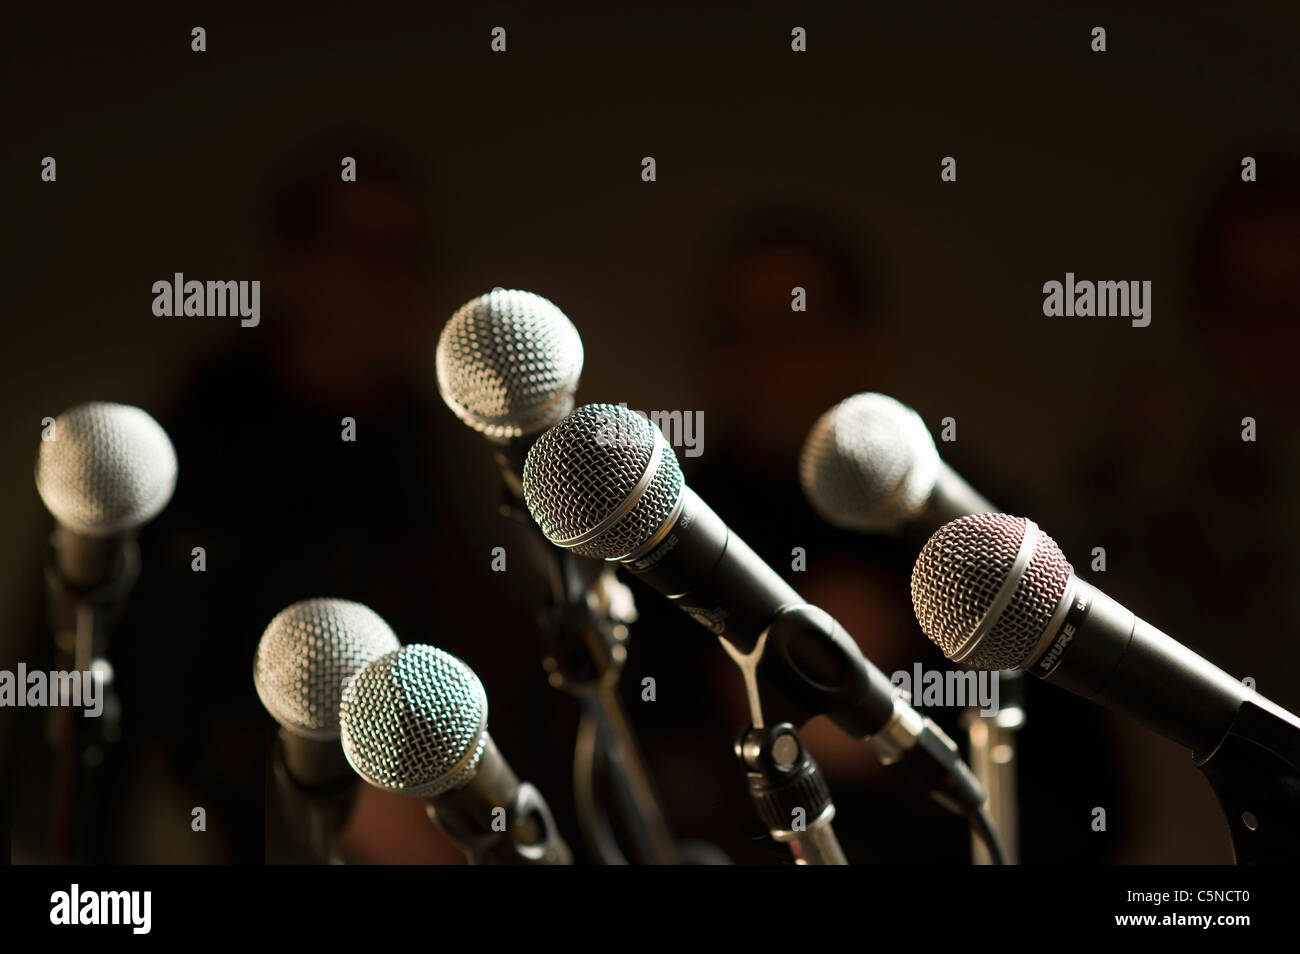 A group of microphones - Stock Image